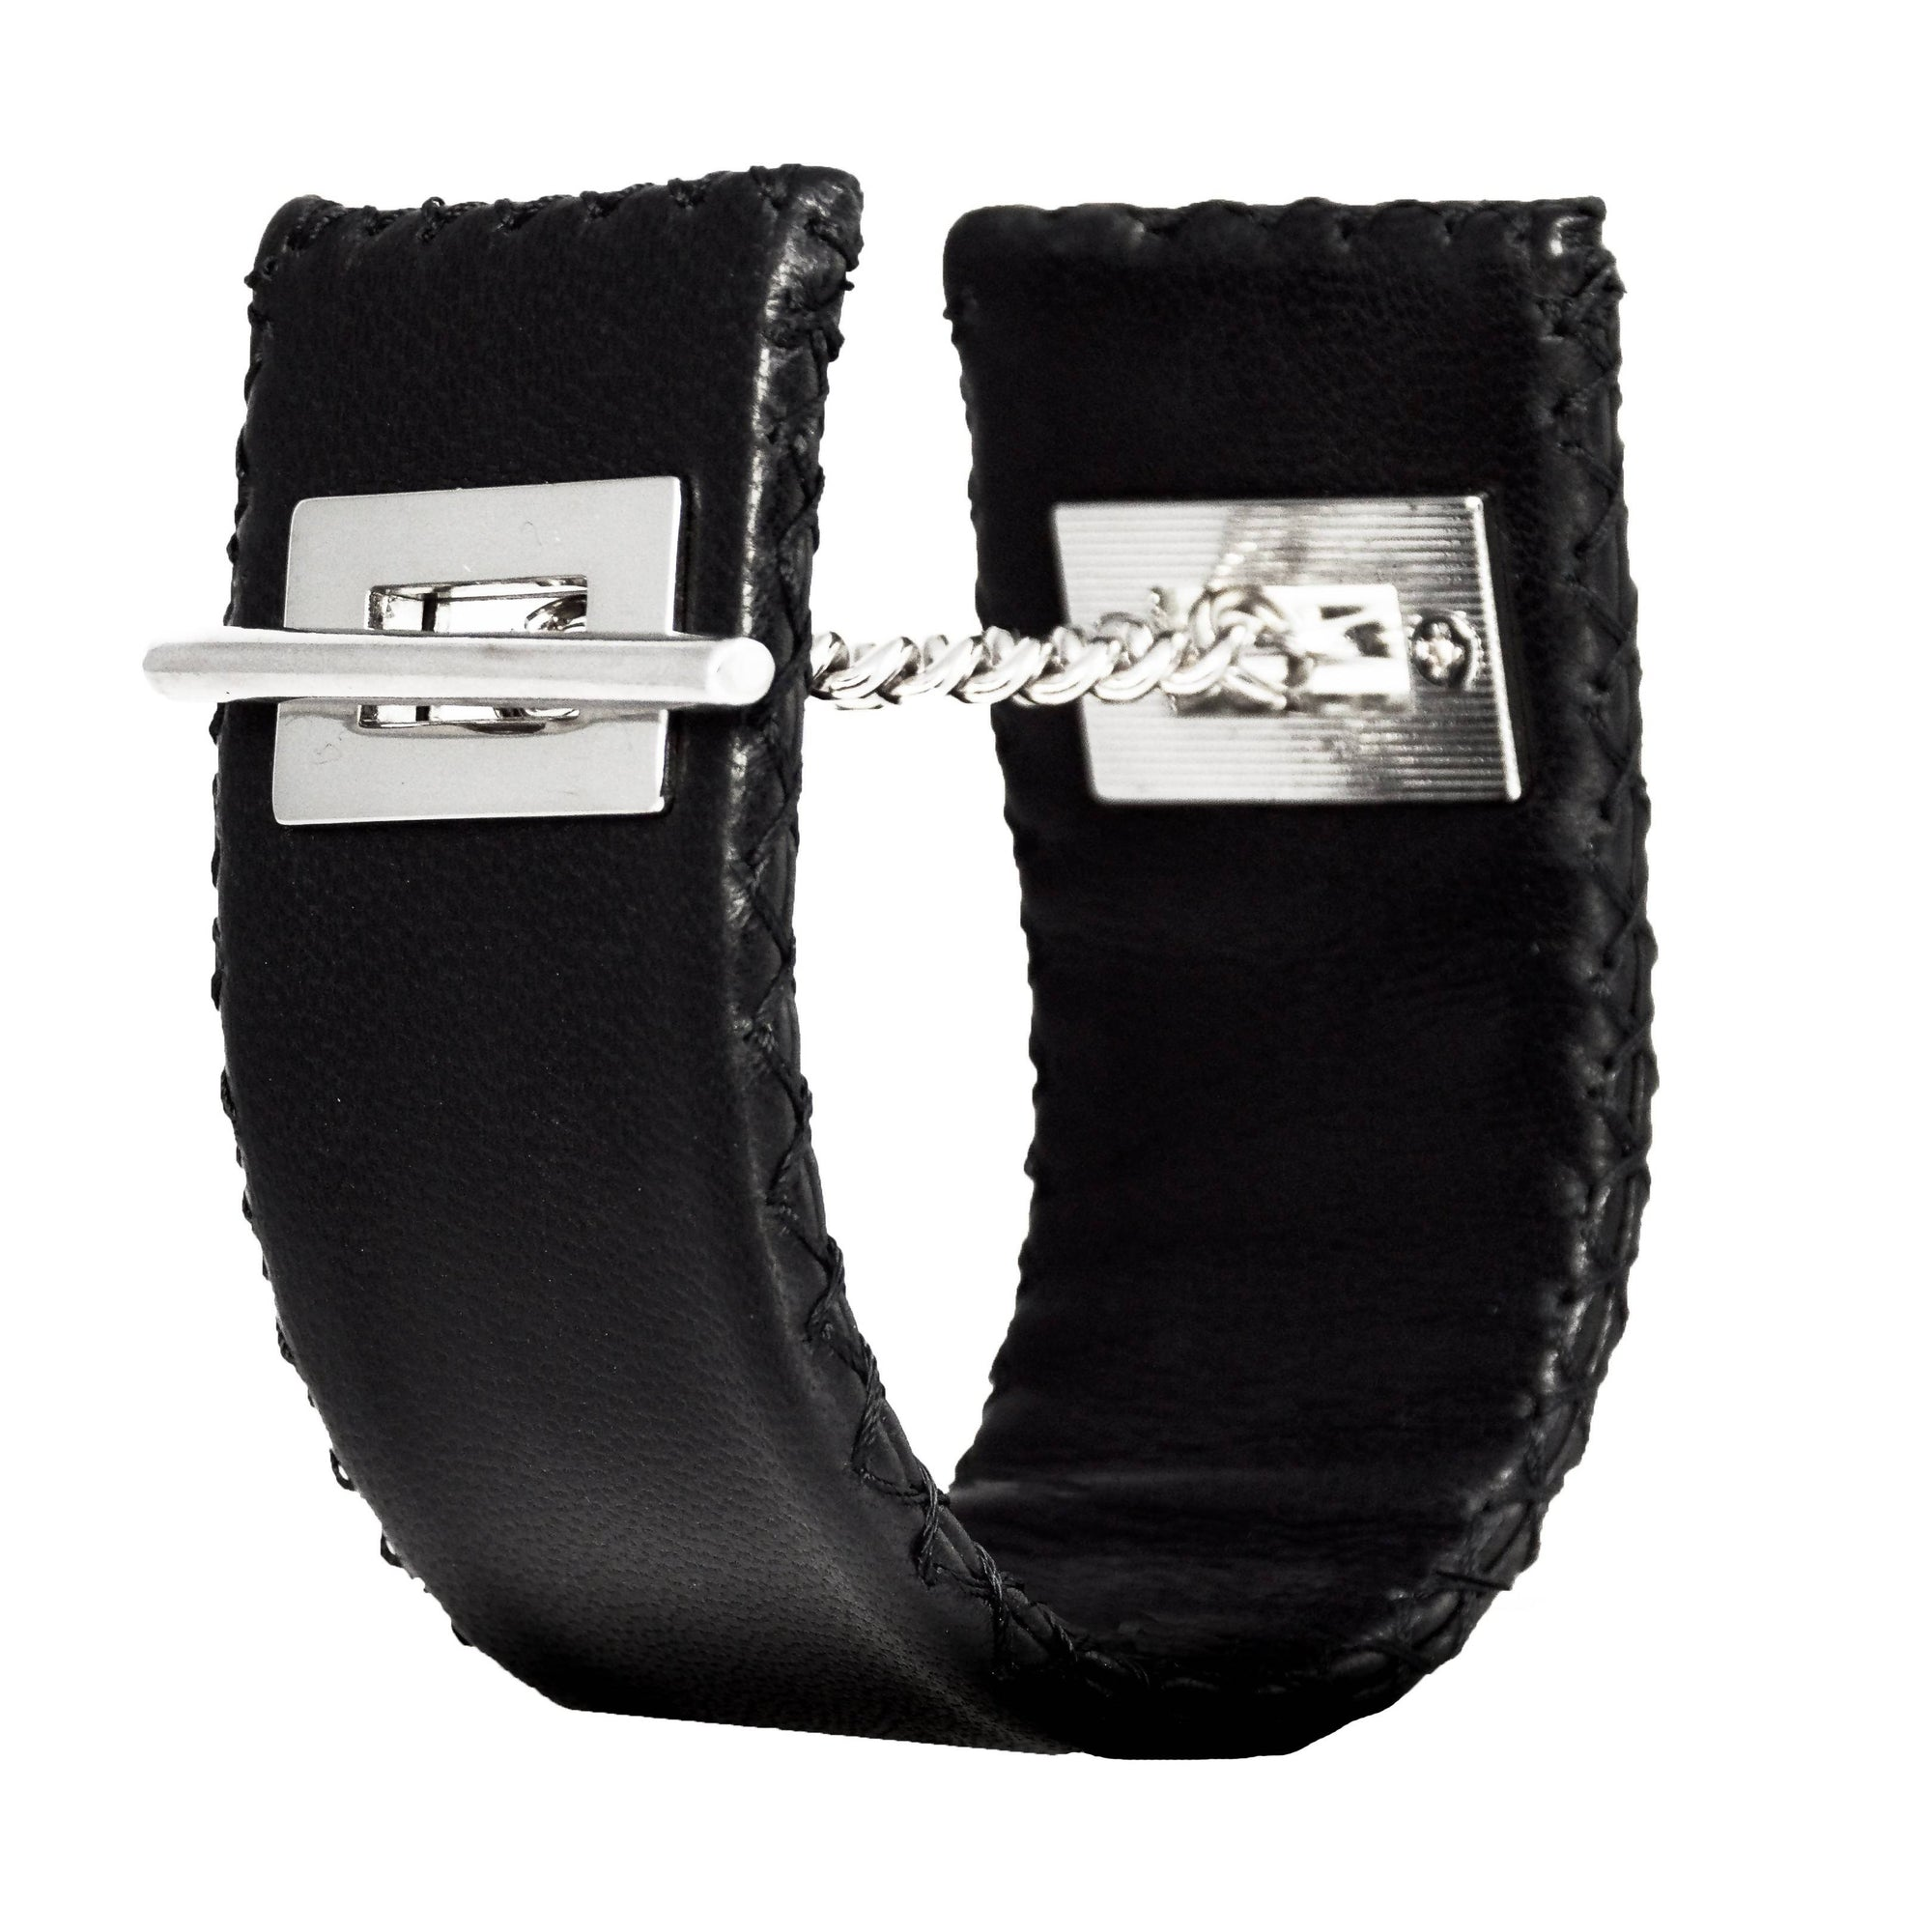 Stitched Leather Cuff Bracelet - Lalita - Evellier